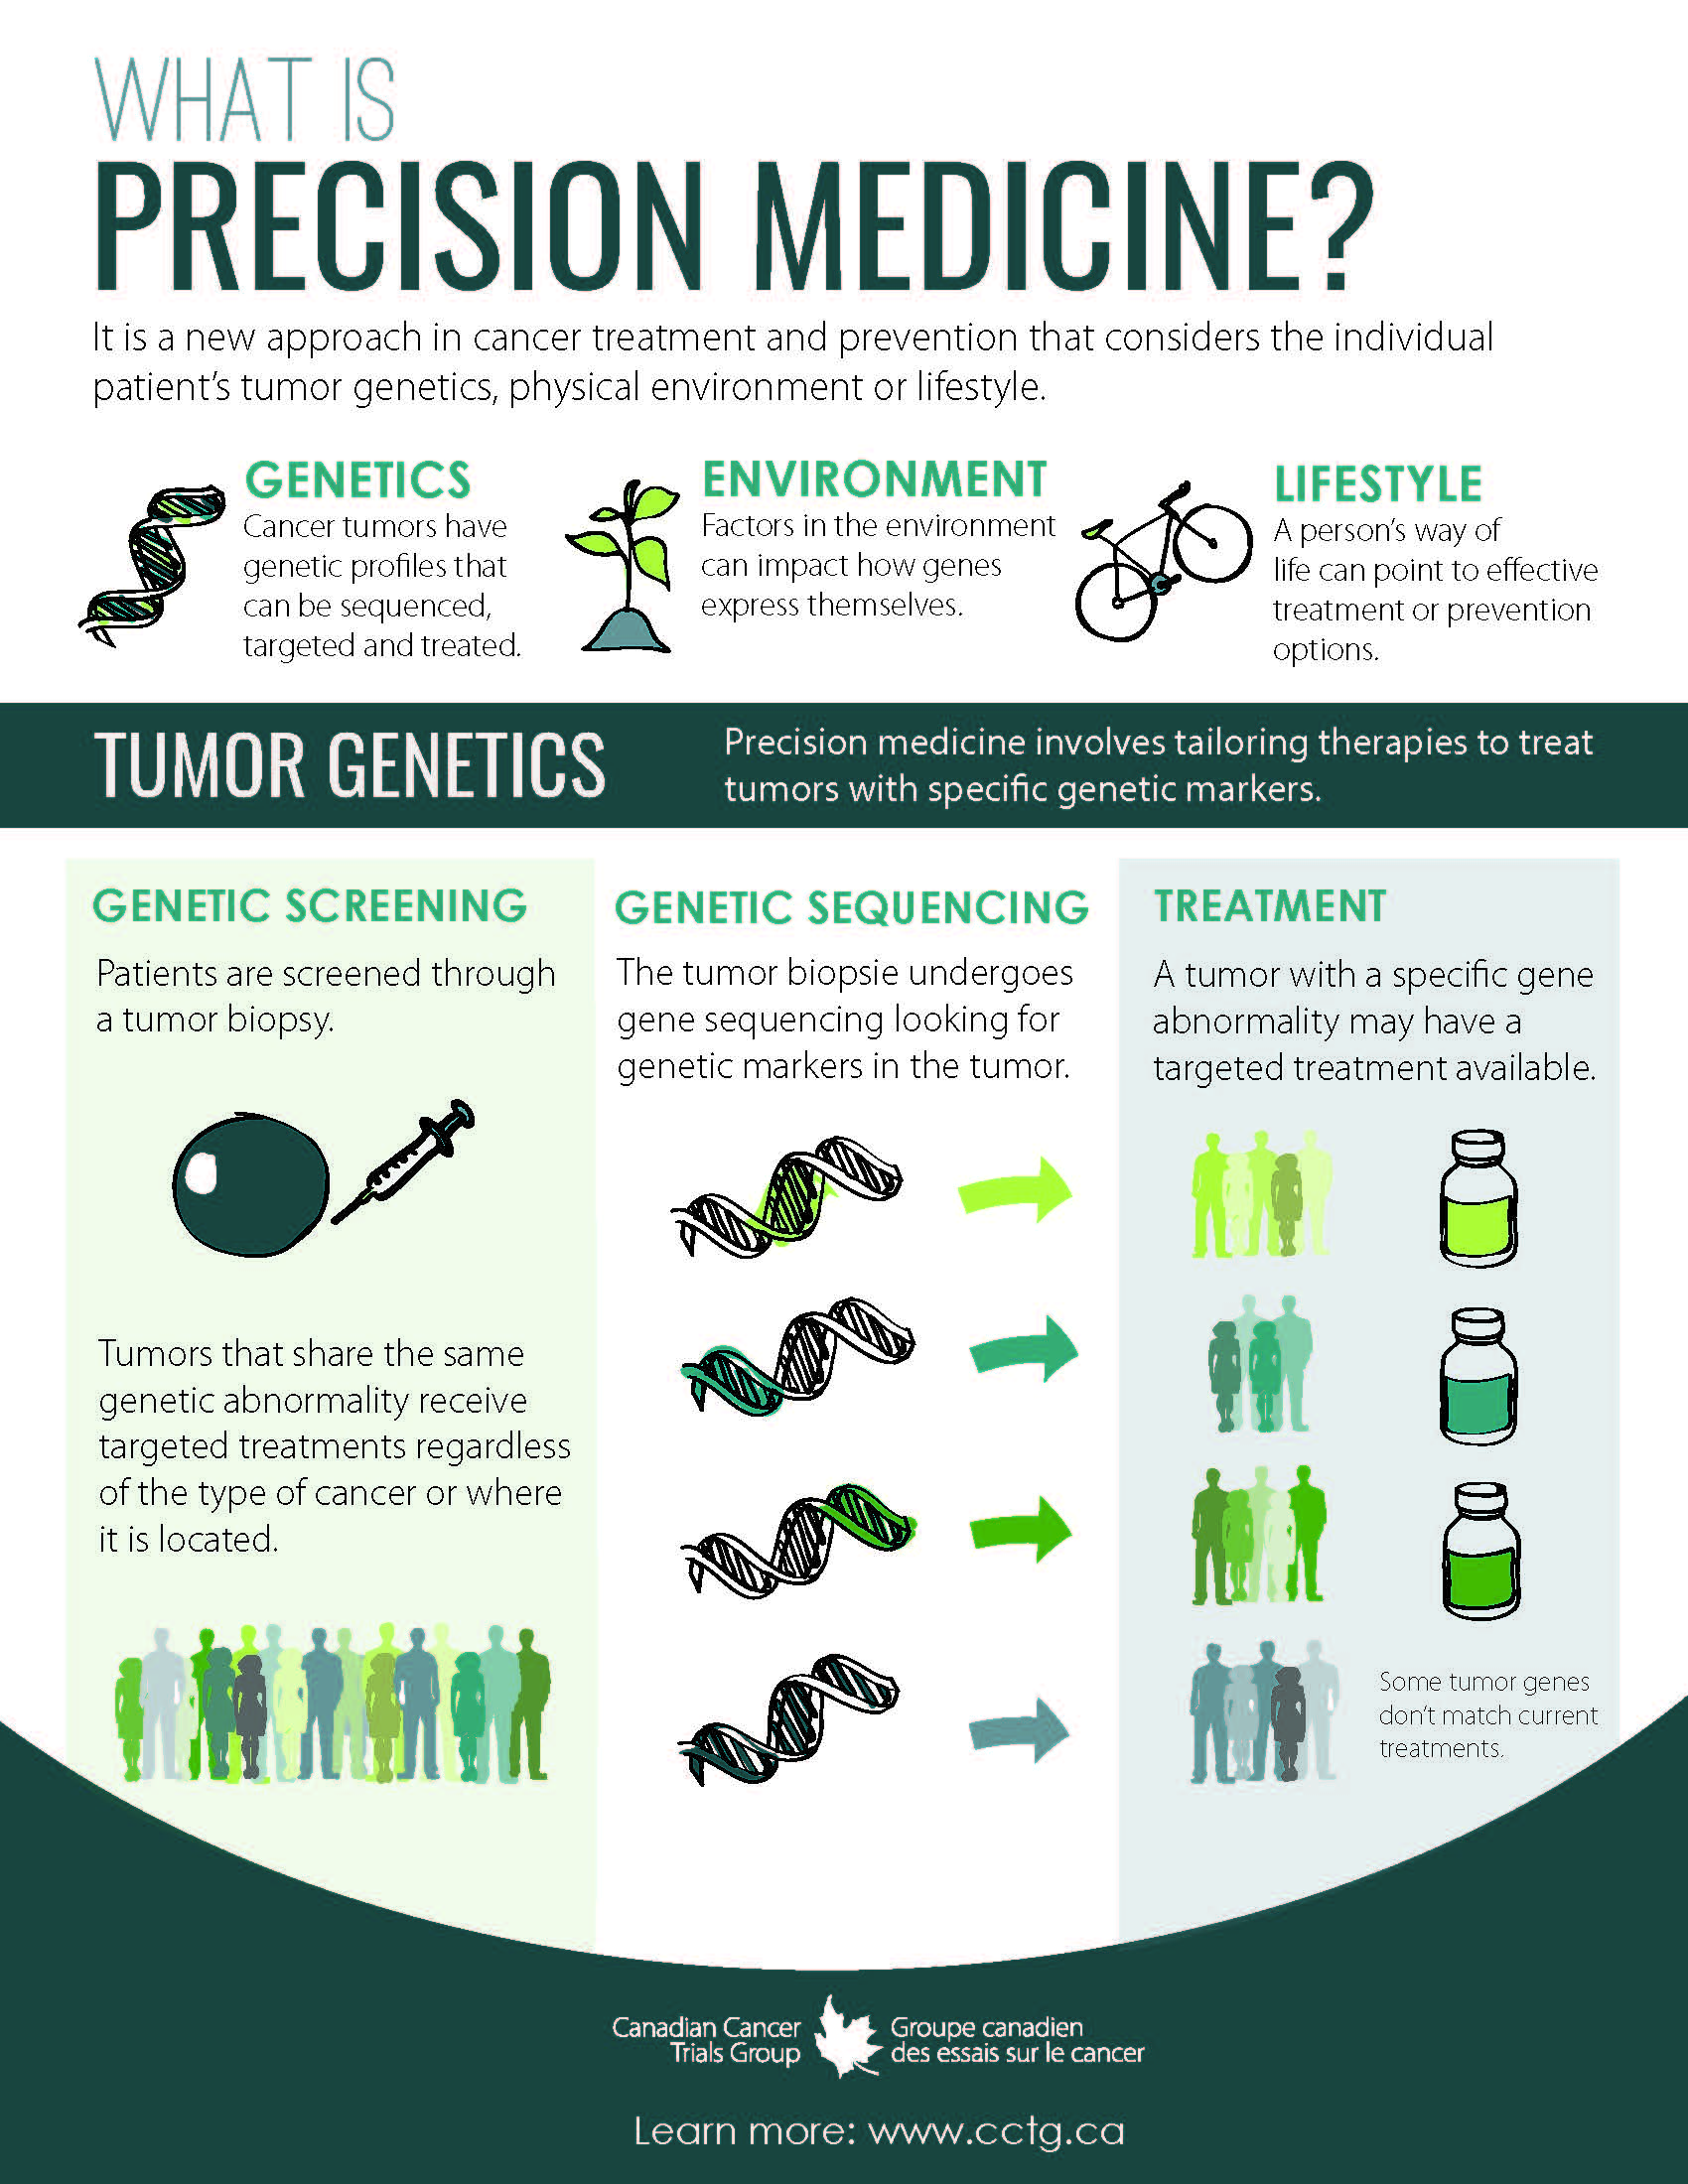 What is precision medicine